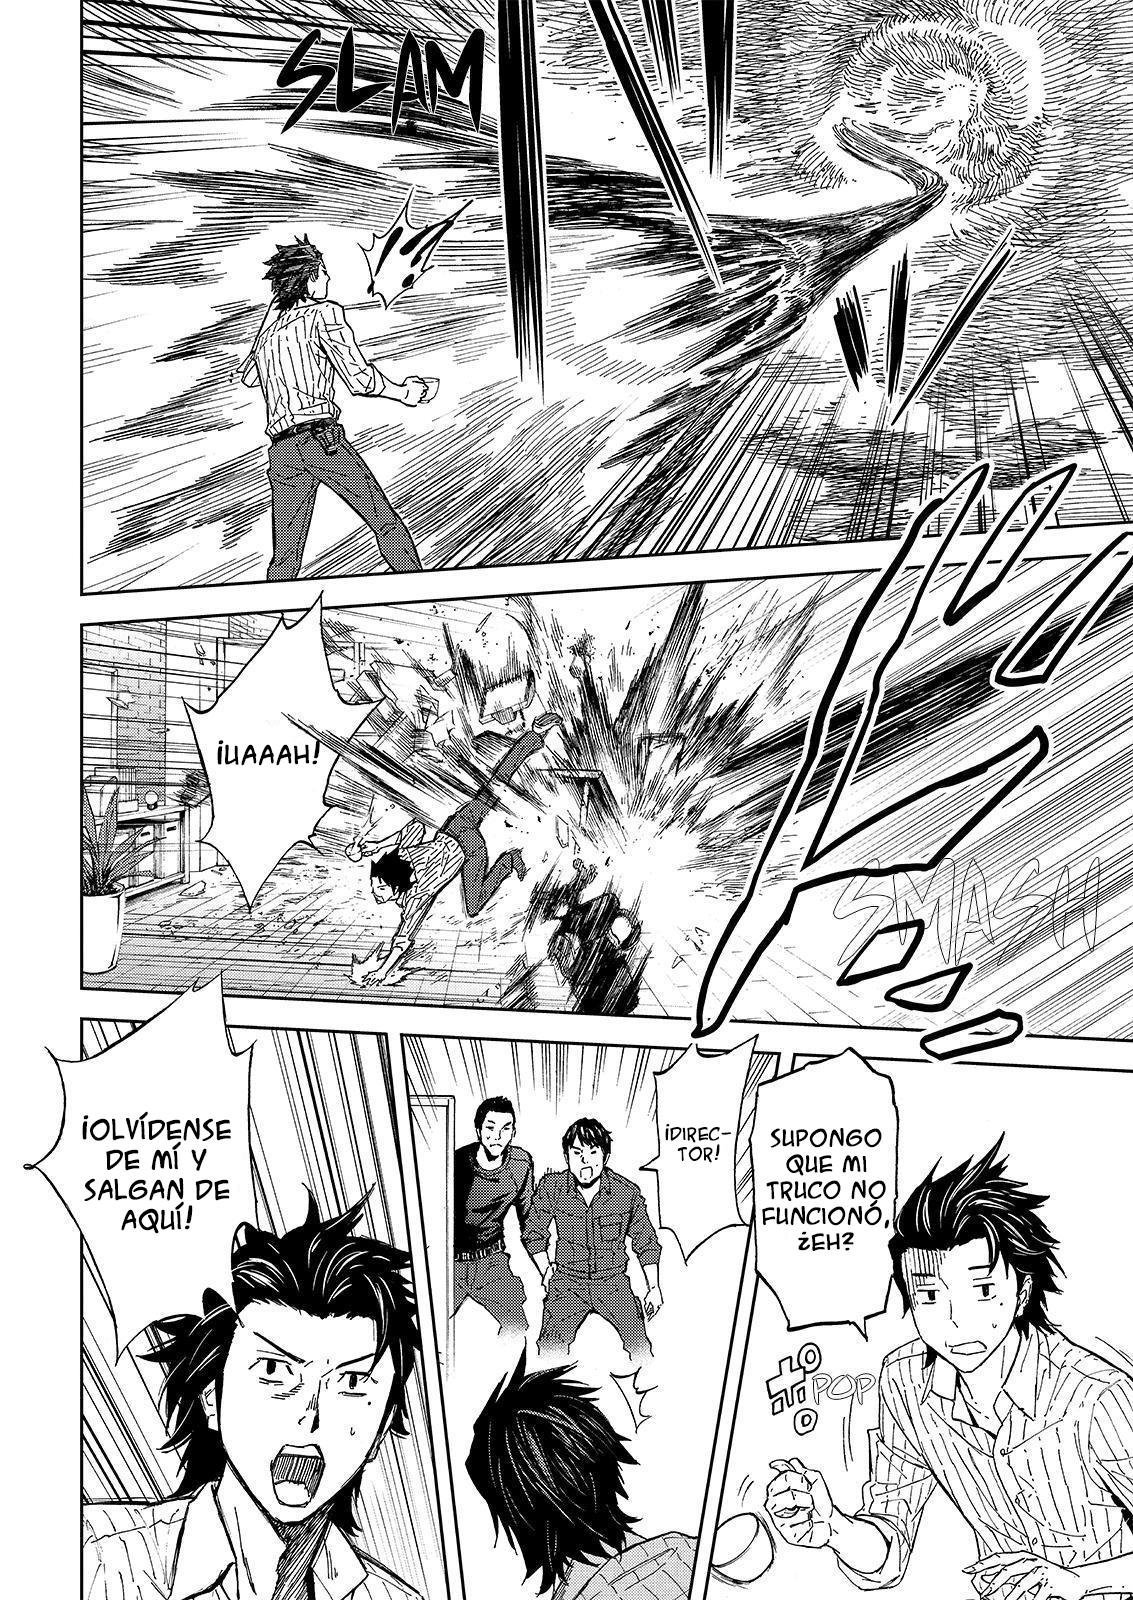 http://c5.ninemanga.com/es_manga/54/16310/435442/1067186e81115b17ee94a90f1a4c124c.jpg Page 9